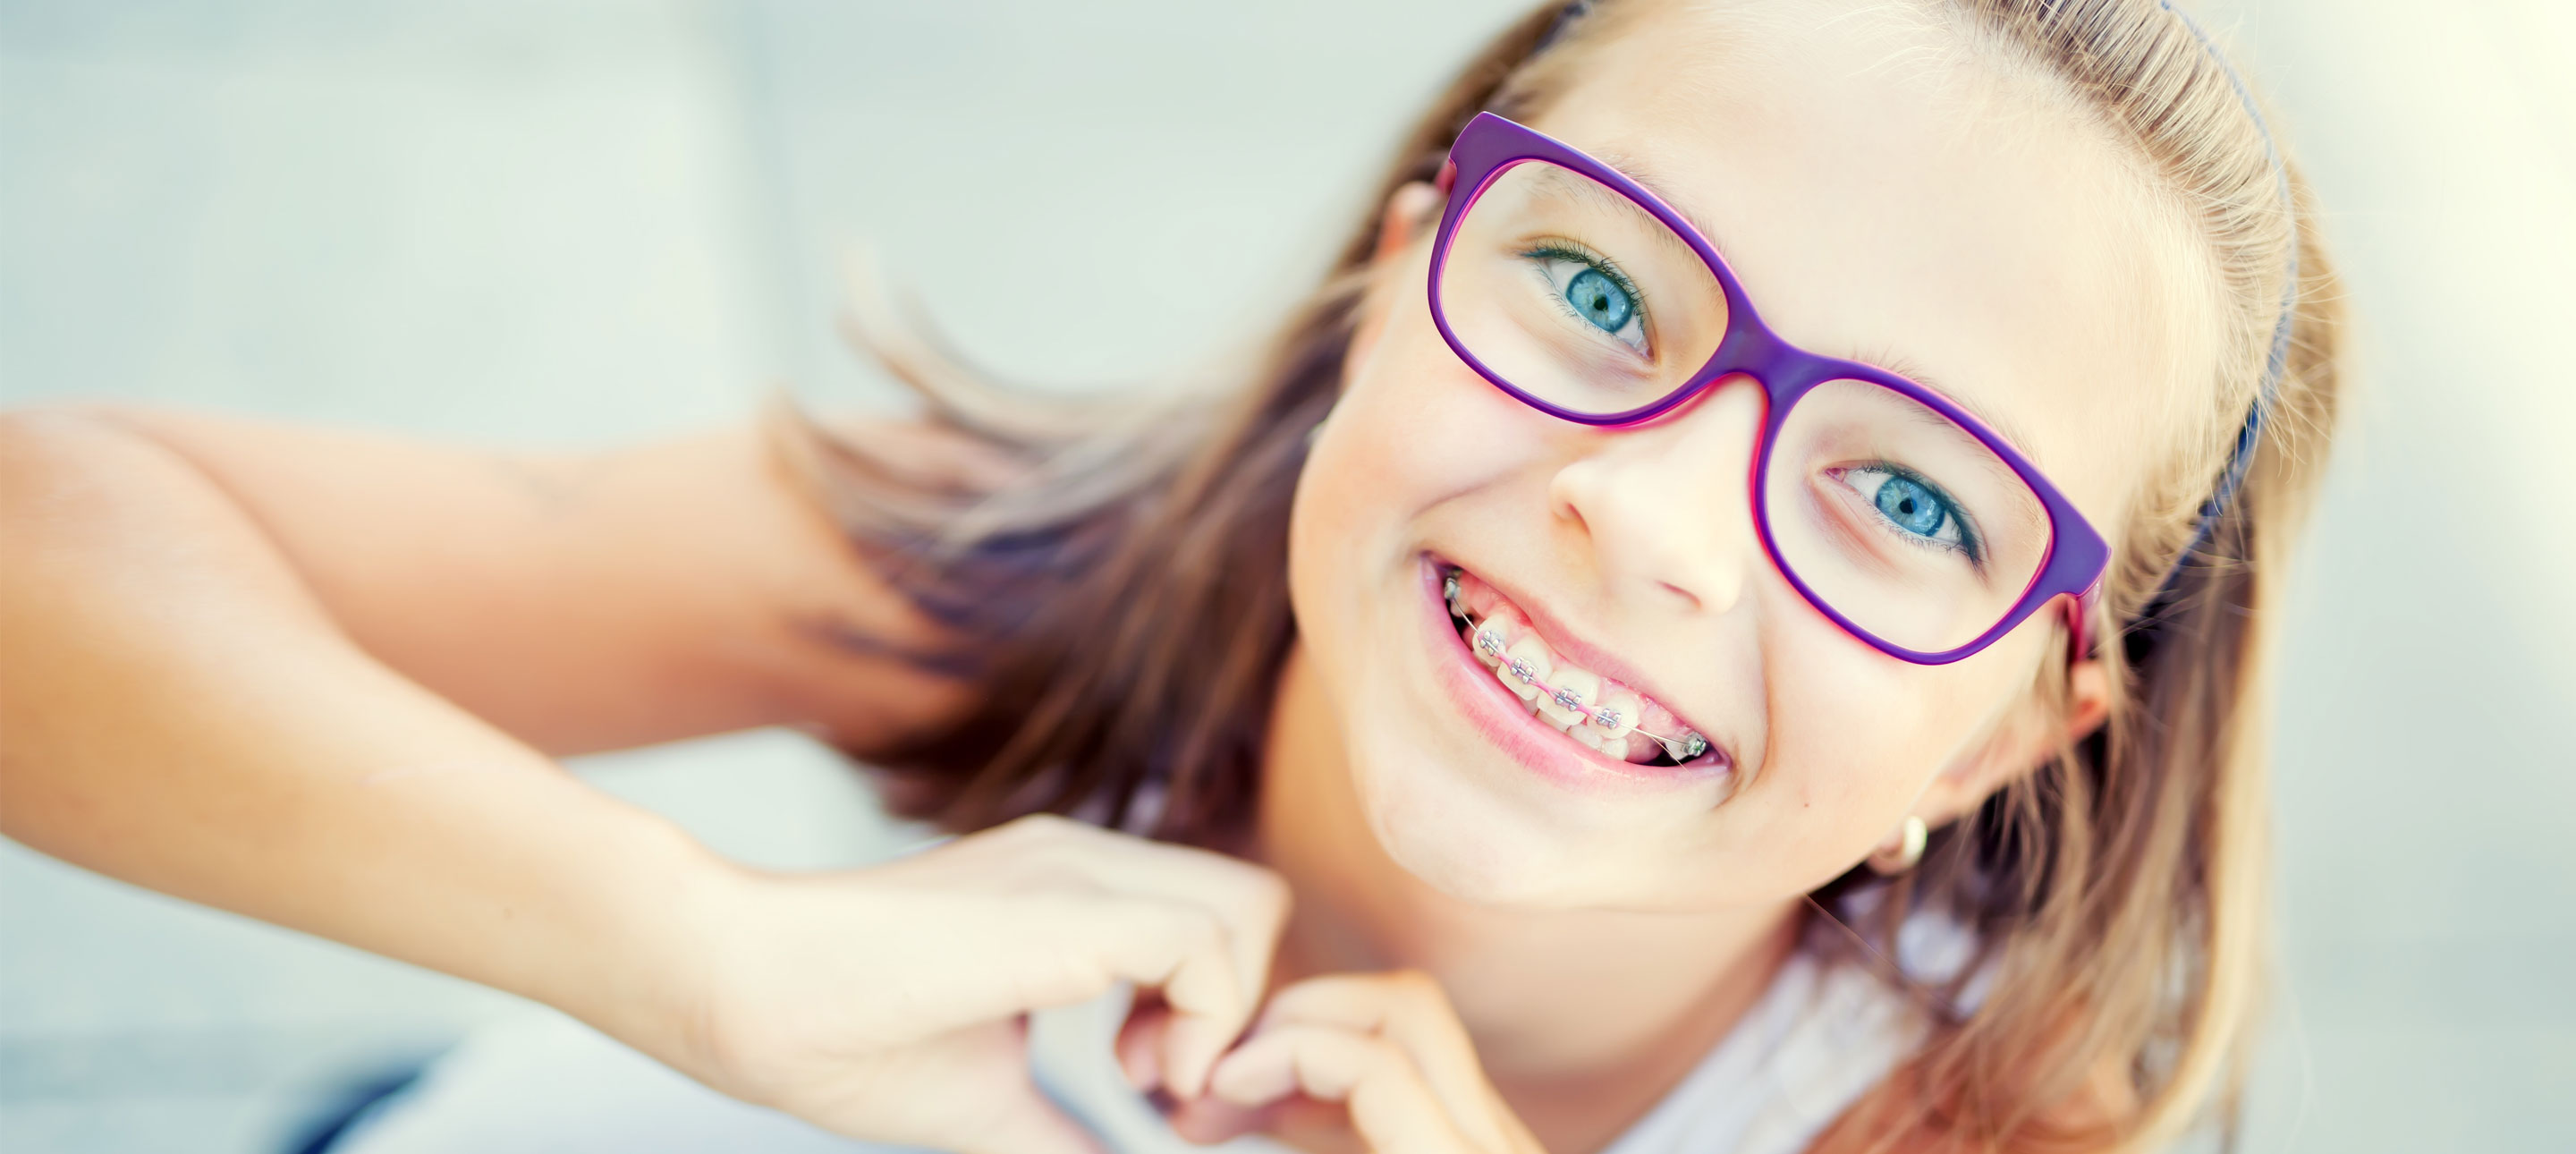 When Should Your Child Be Considered for Braces?